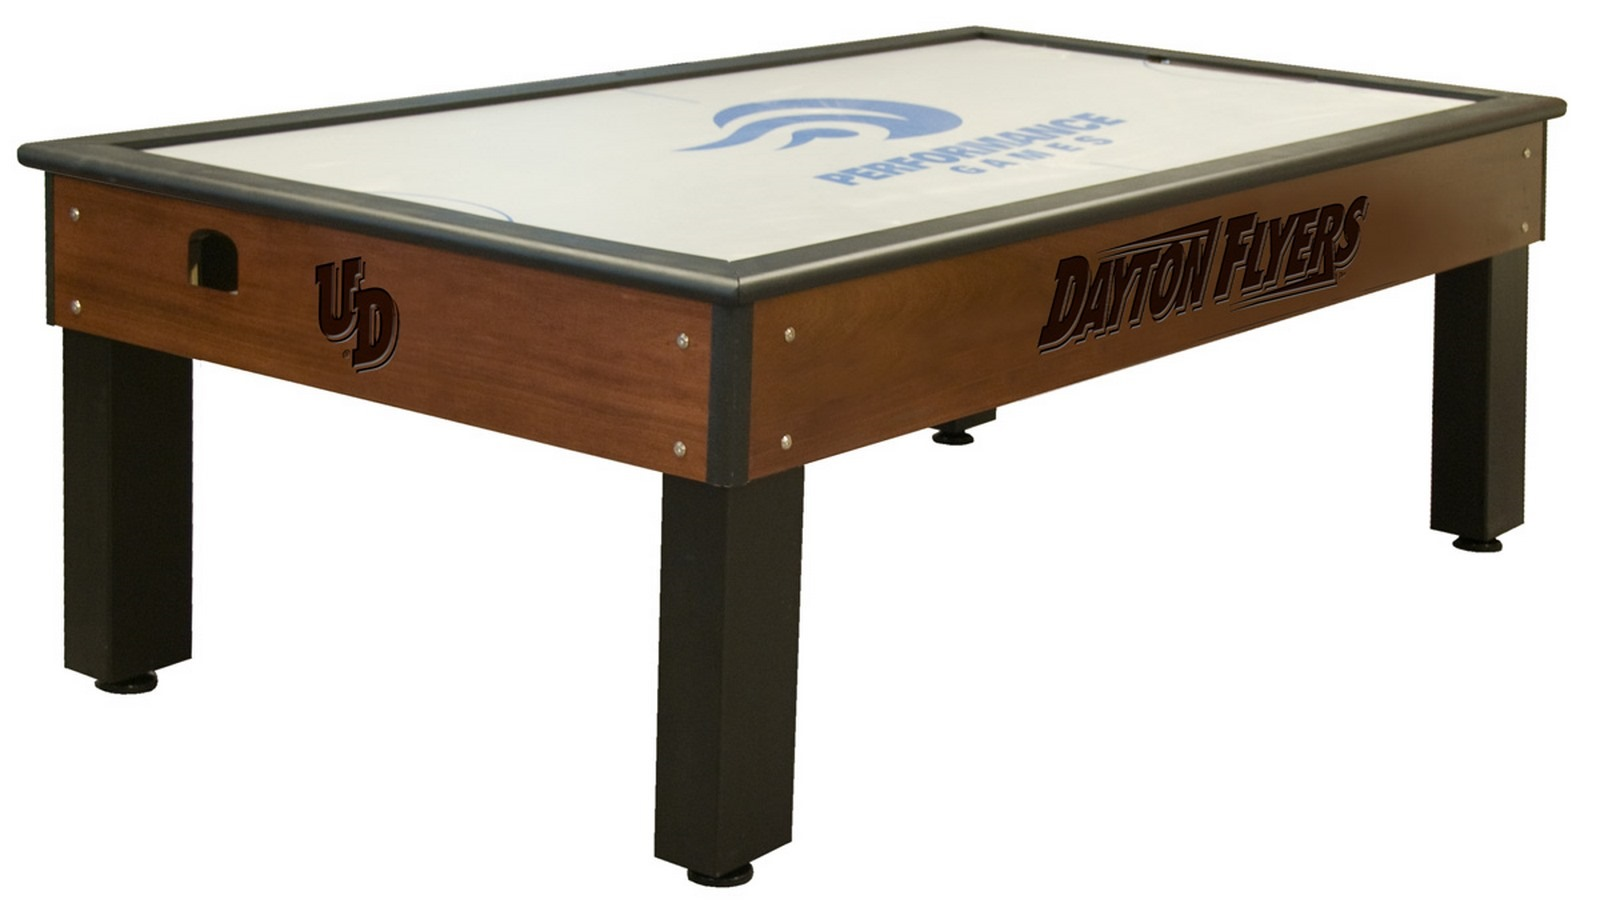 Olhausen Air Hockey Table of Dayton Air Hockey 100% made in USA, manufactured by Olhausen ...